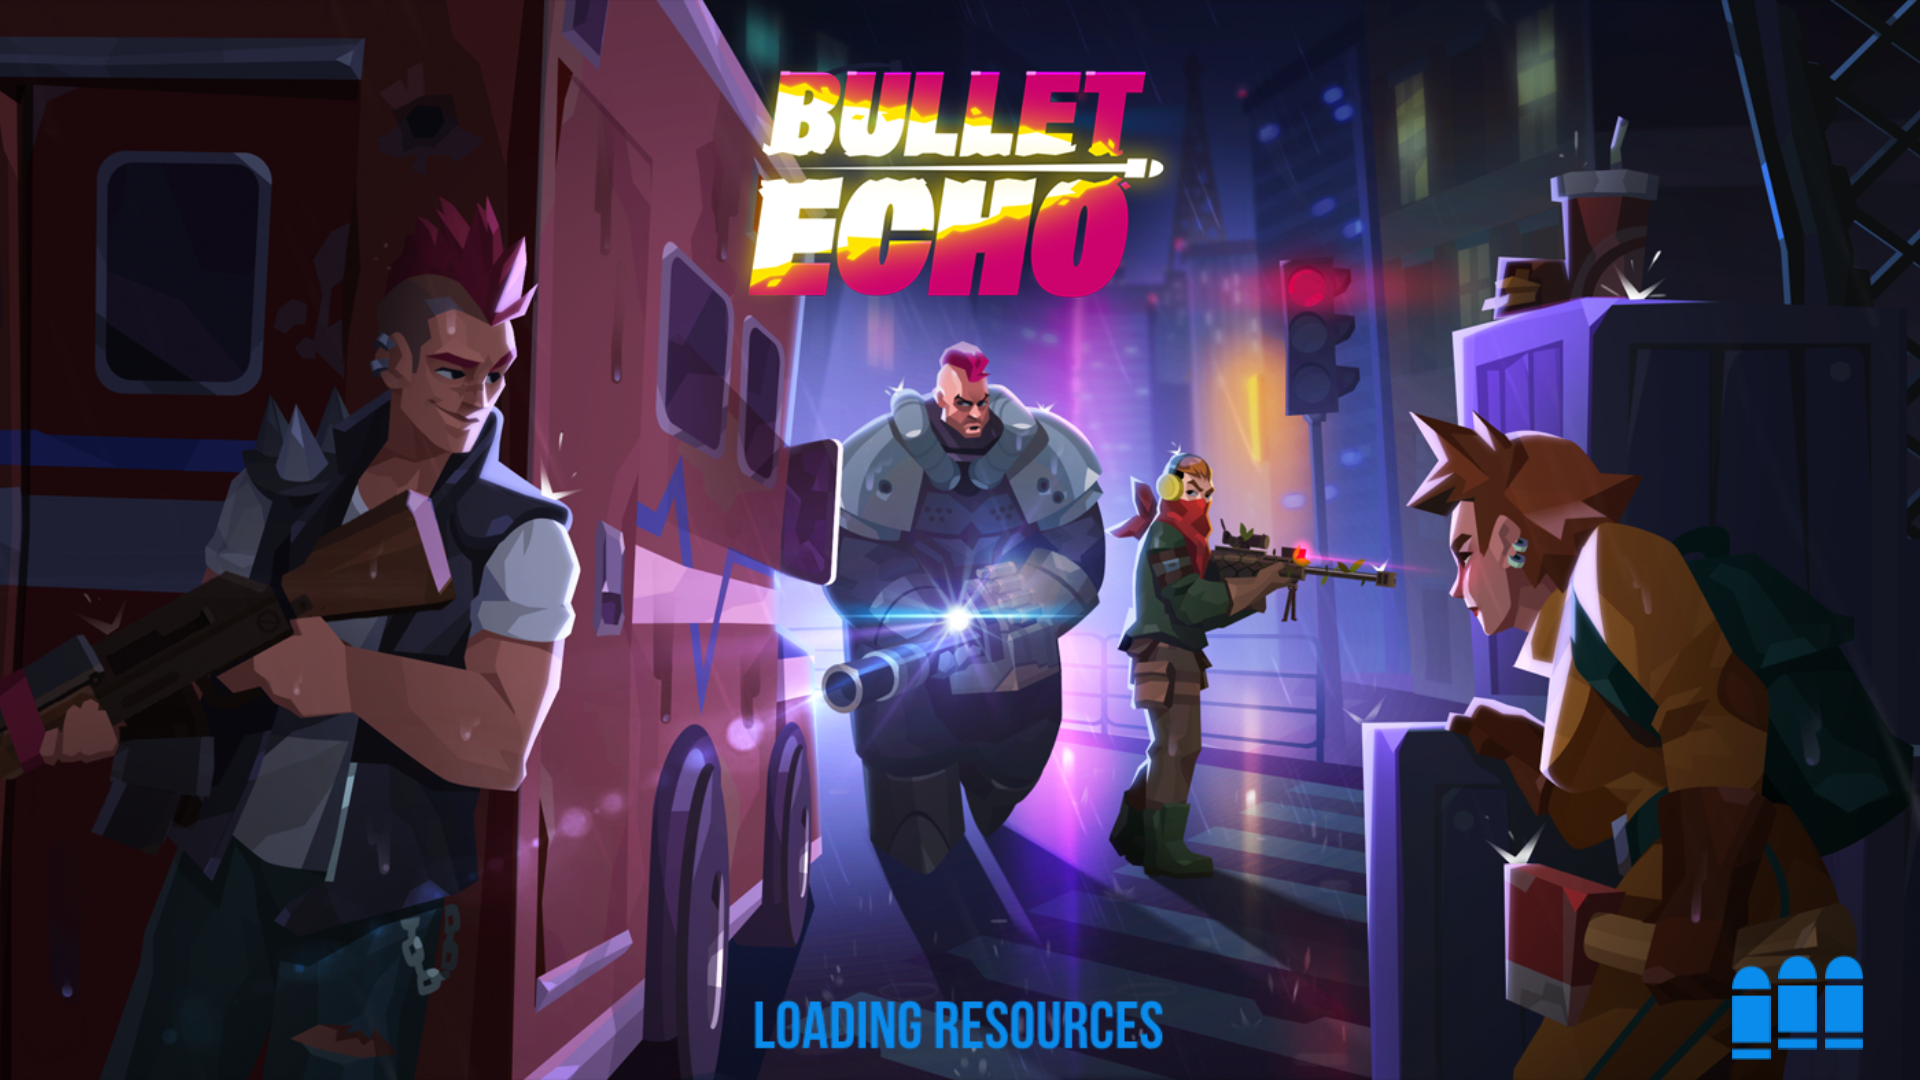 Bullet Echo Android Review, With 6 Useful Tips